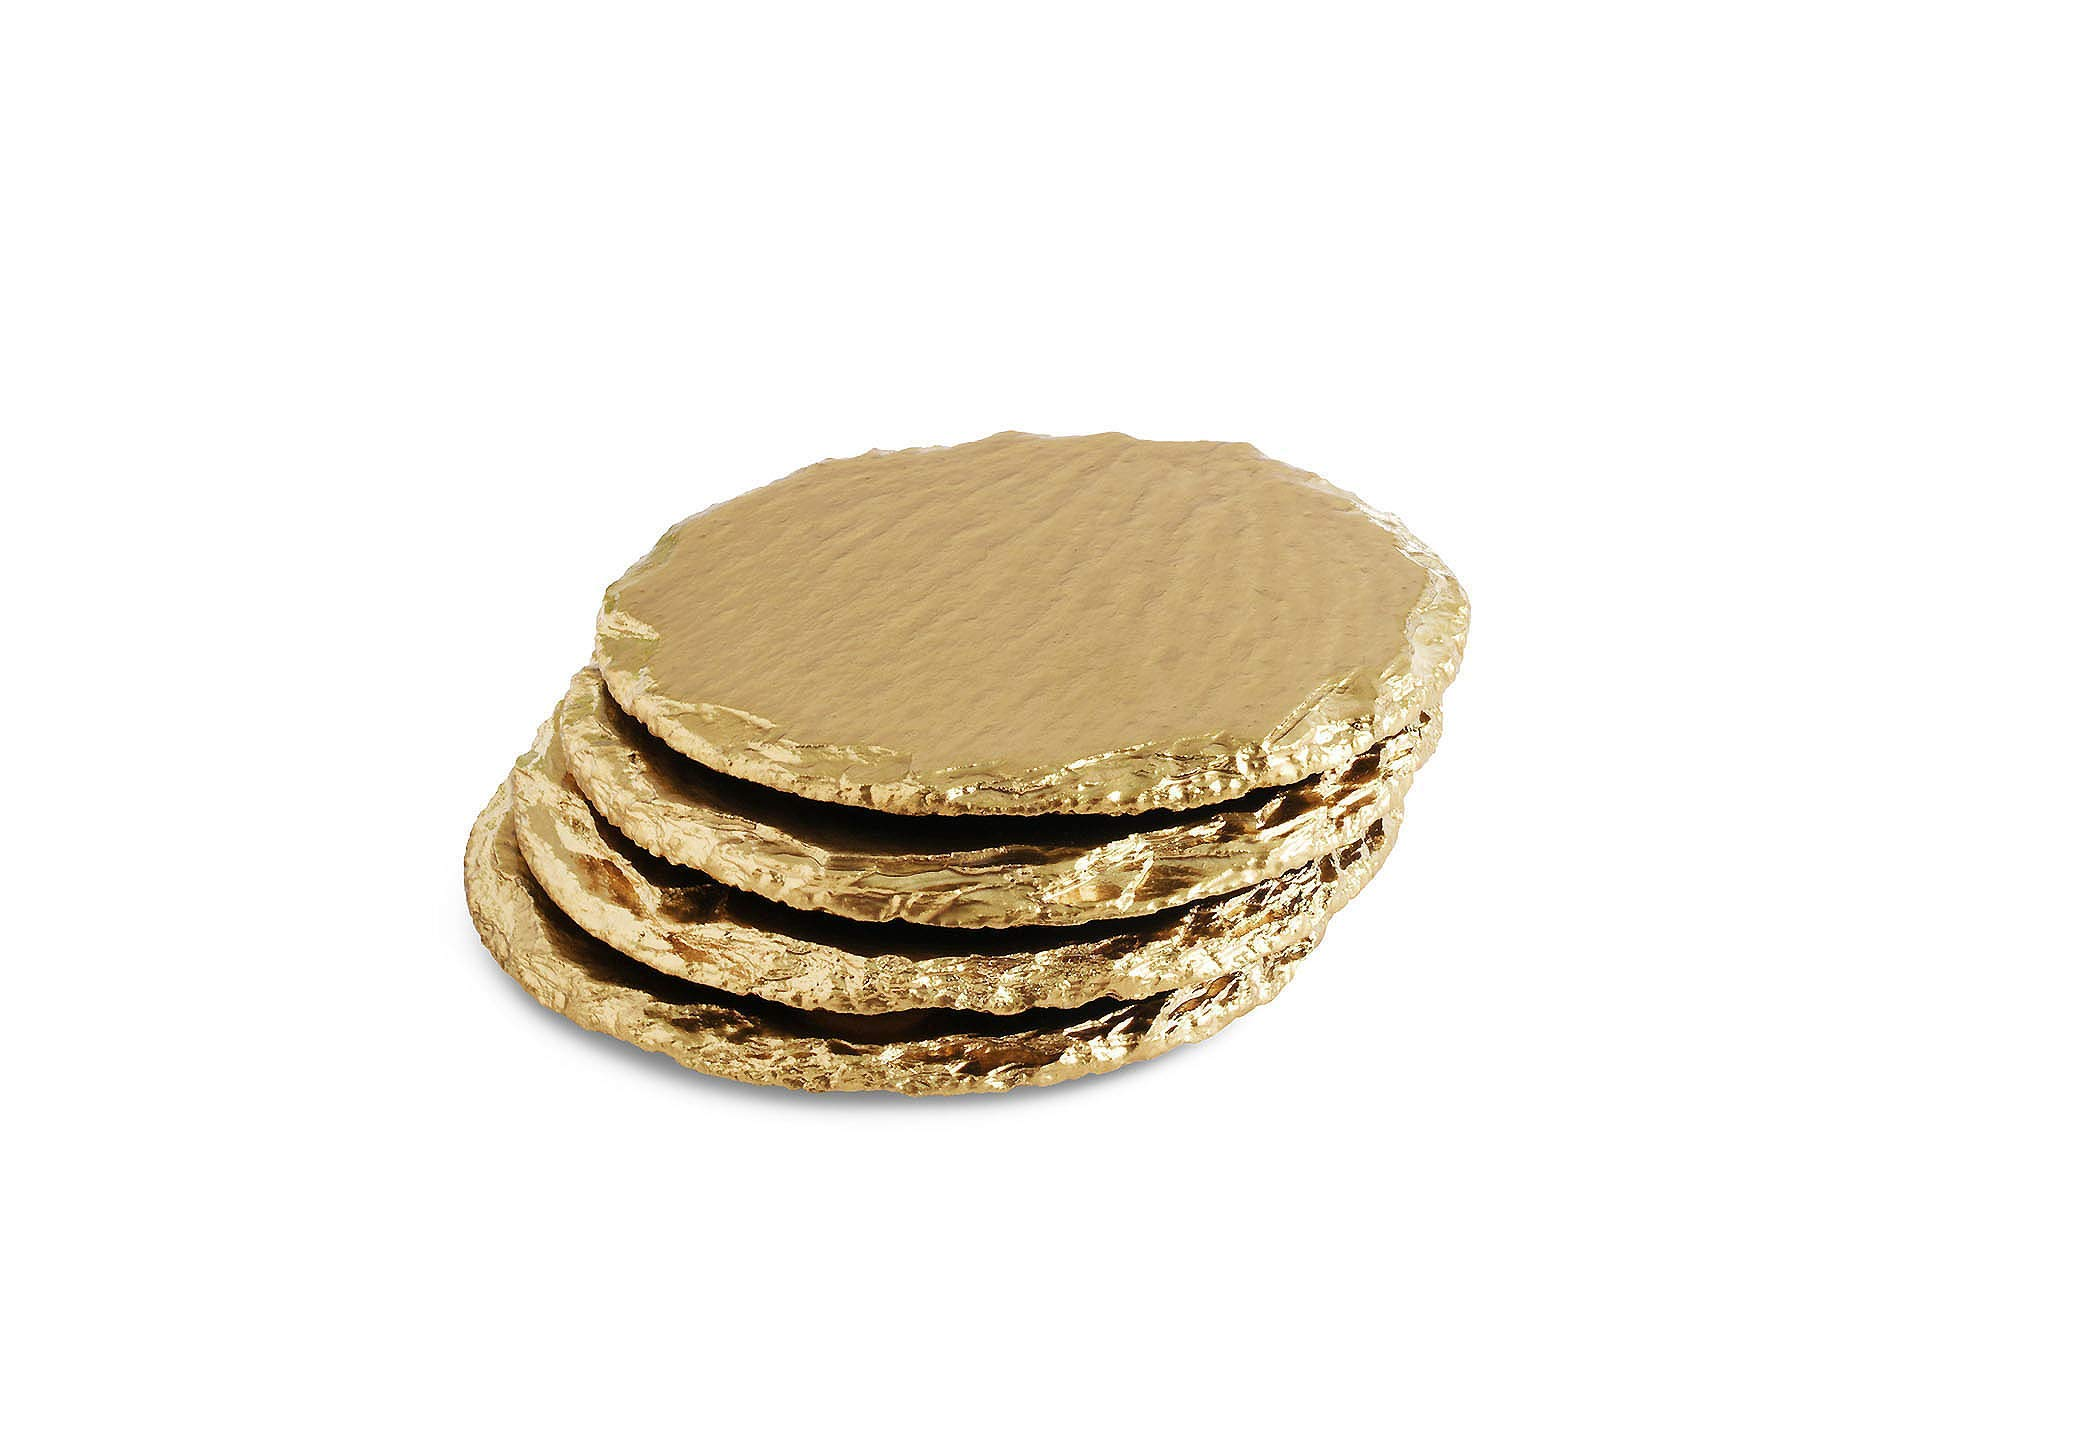 Renee Redesigns Handmade Gold Slate Stone Coasters For Drinks | Protect Your Table Tops From Drink Rings and Spills | Unique 4-Piece Holiday Gift Set, Round - 4 x 4 inches by Renee Redesigns